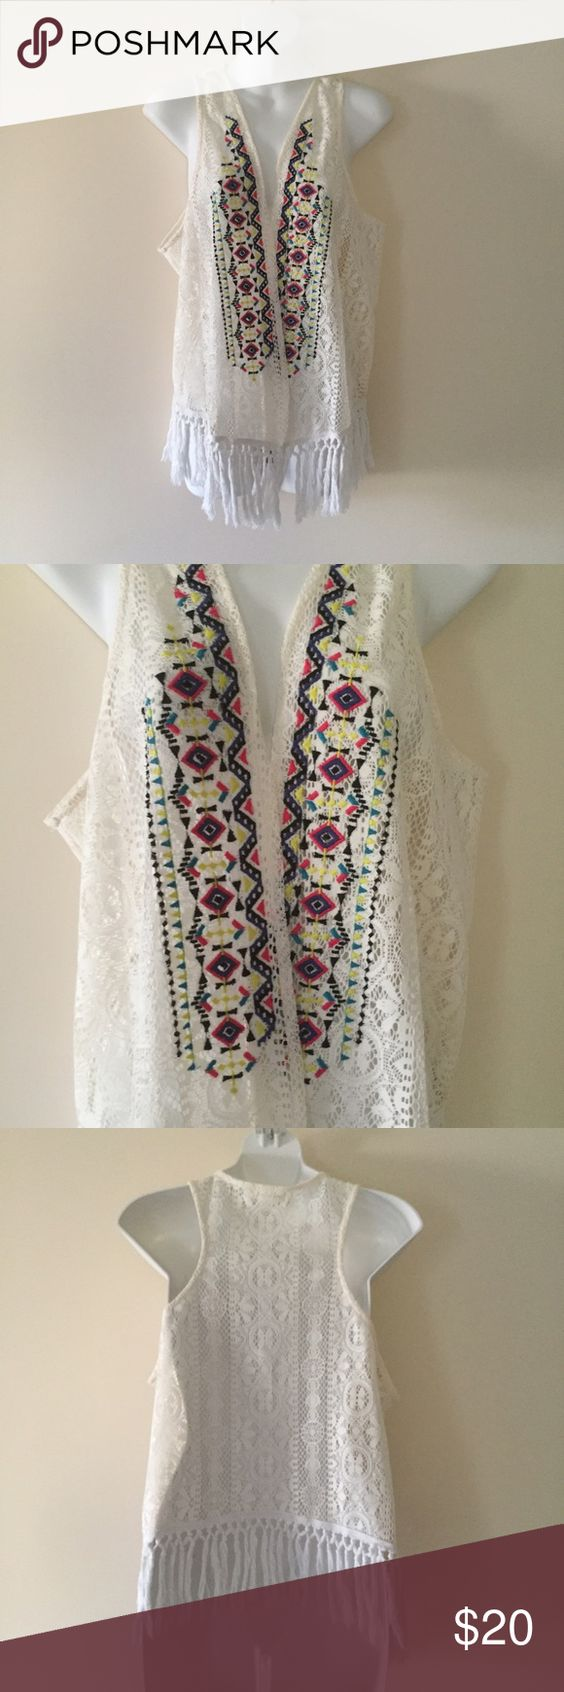 Embroidered vest with fringe Cute, throw on vest with fringe on the bottom. Perfect for festival season. Marked as L/XL, but would fit fine on a range of sizes.   Brand is Love on a Hanger from Nordstrom    Embroidered vest with fringe love on a hanger Tops